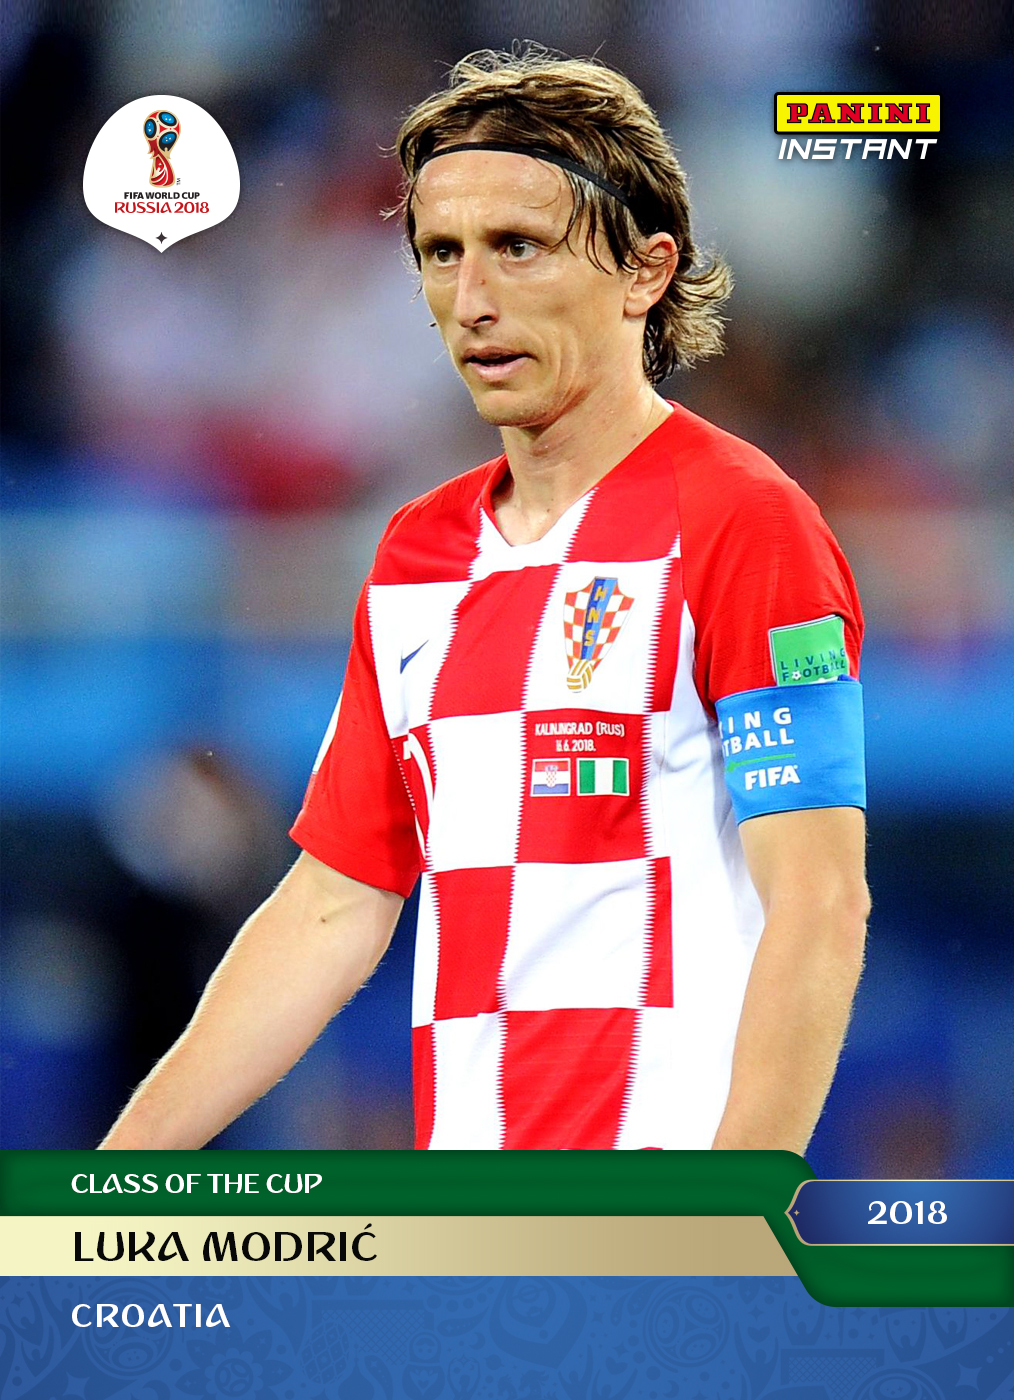 online store 114c9 c5f82 Luka Modric - 2018 Instant Soccer World Cup #7 – Green 1/10 ...